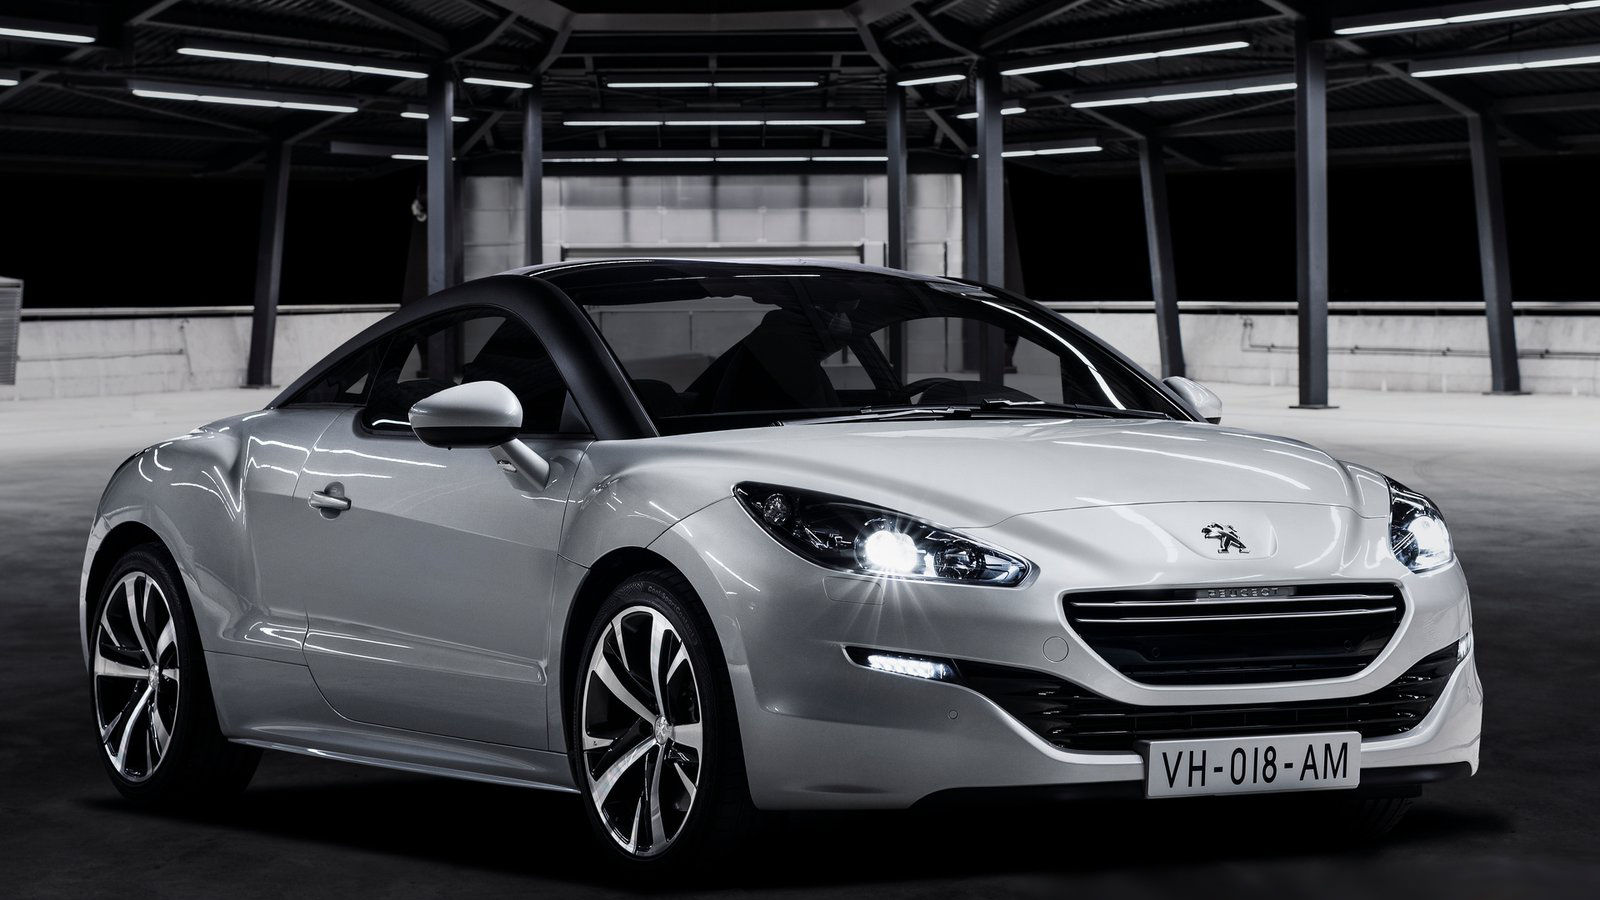 2013 peugeot rcz coupe carwp. Black Bedroom Furniture Sets. Home Design Ideas